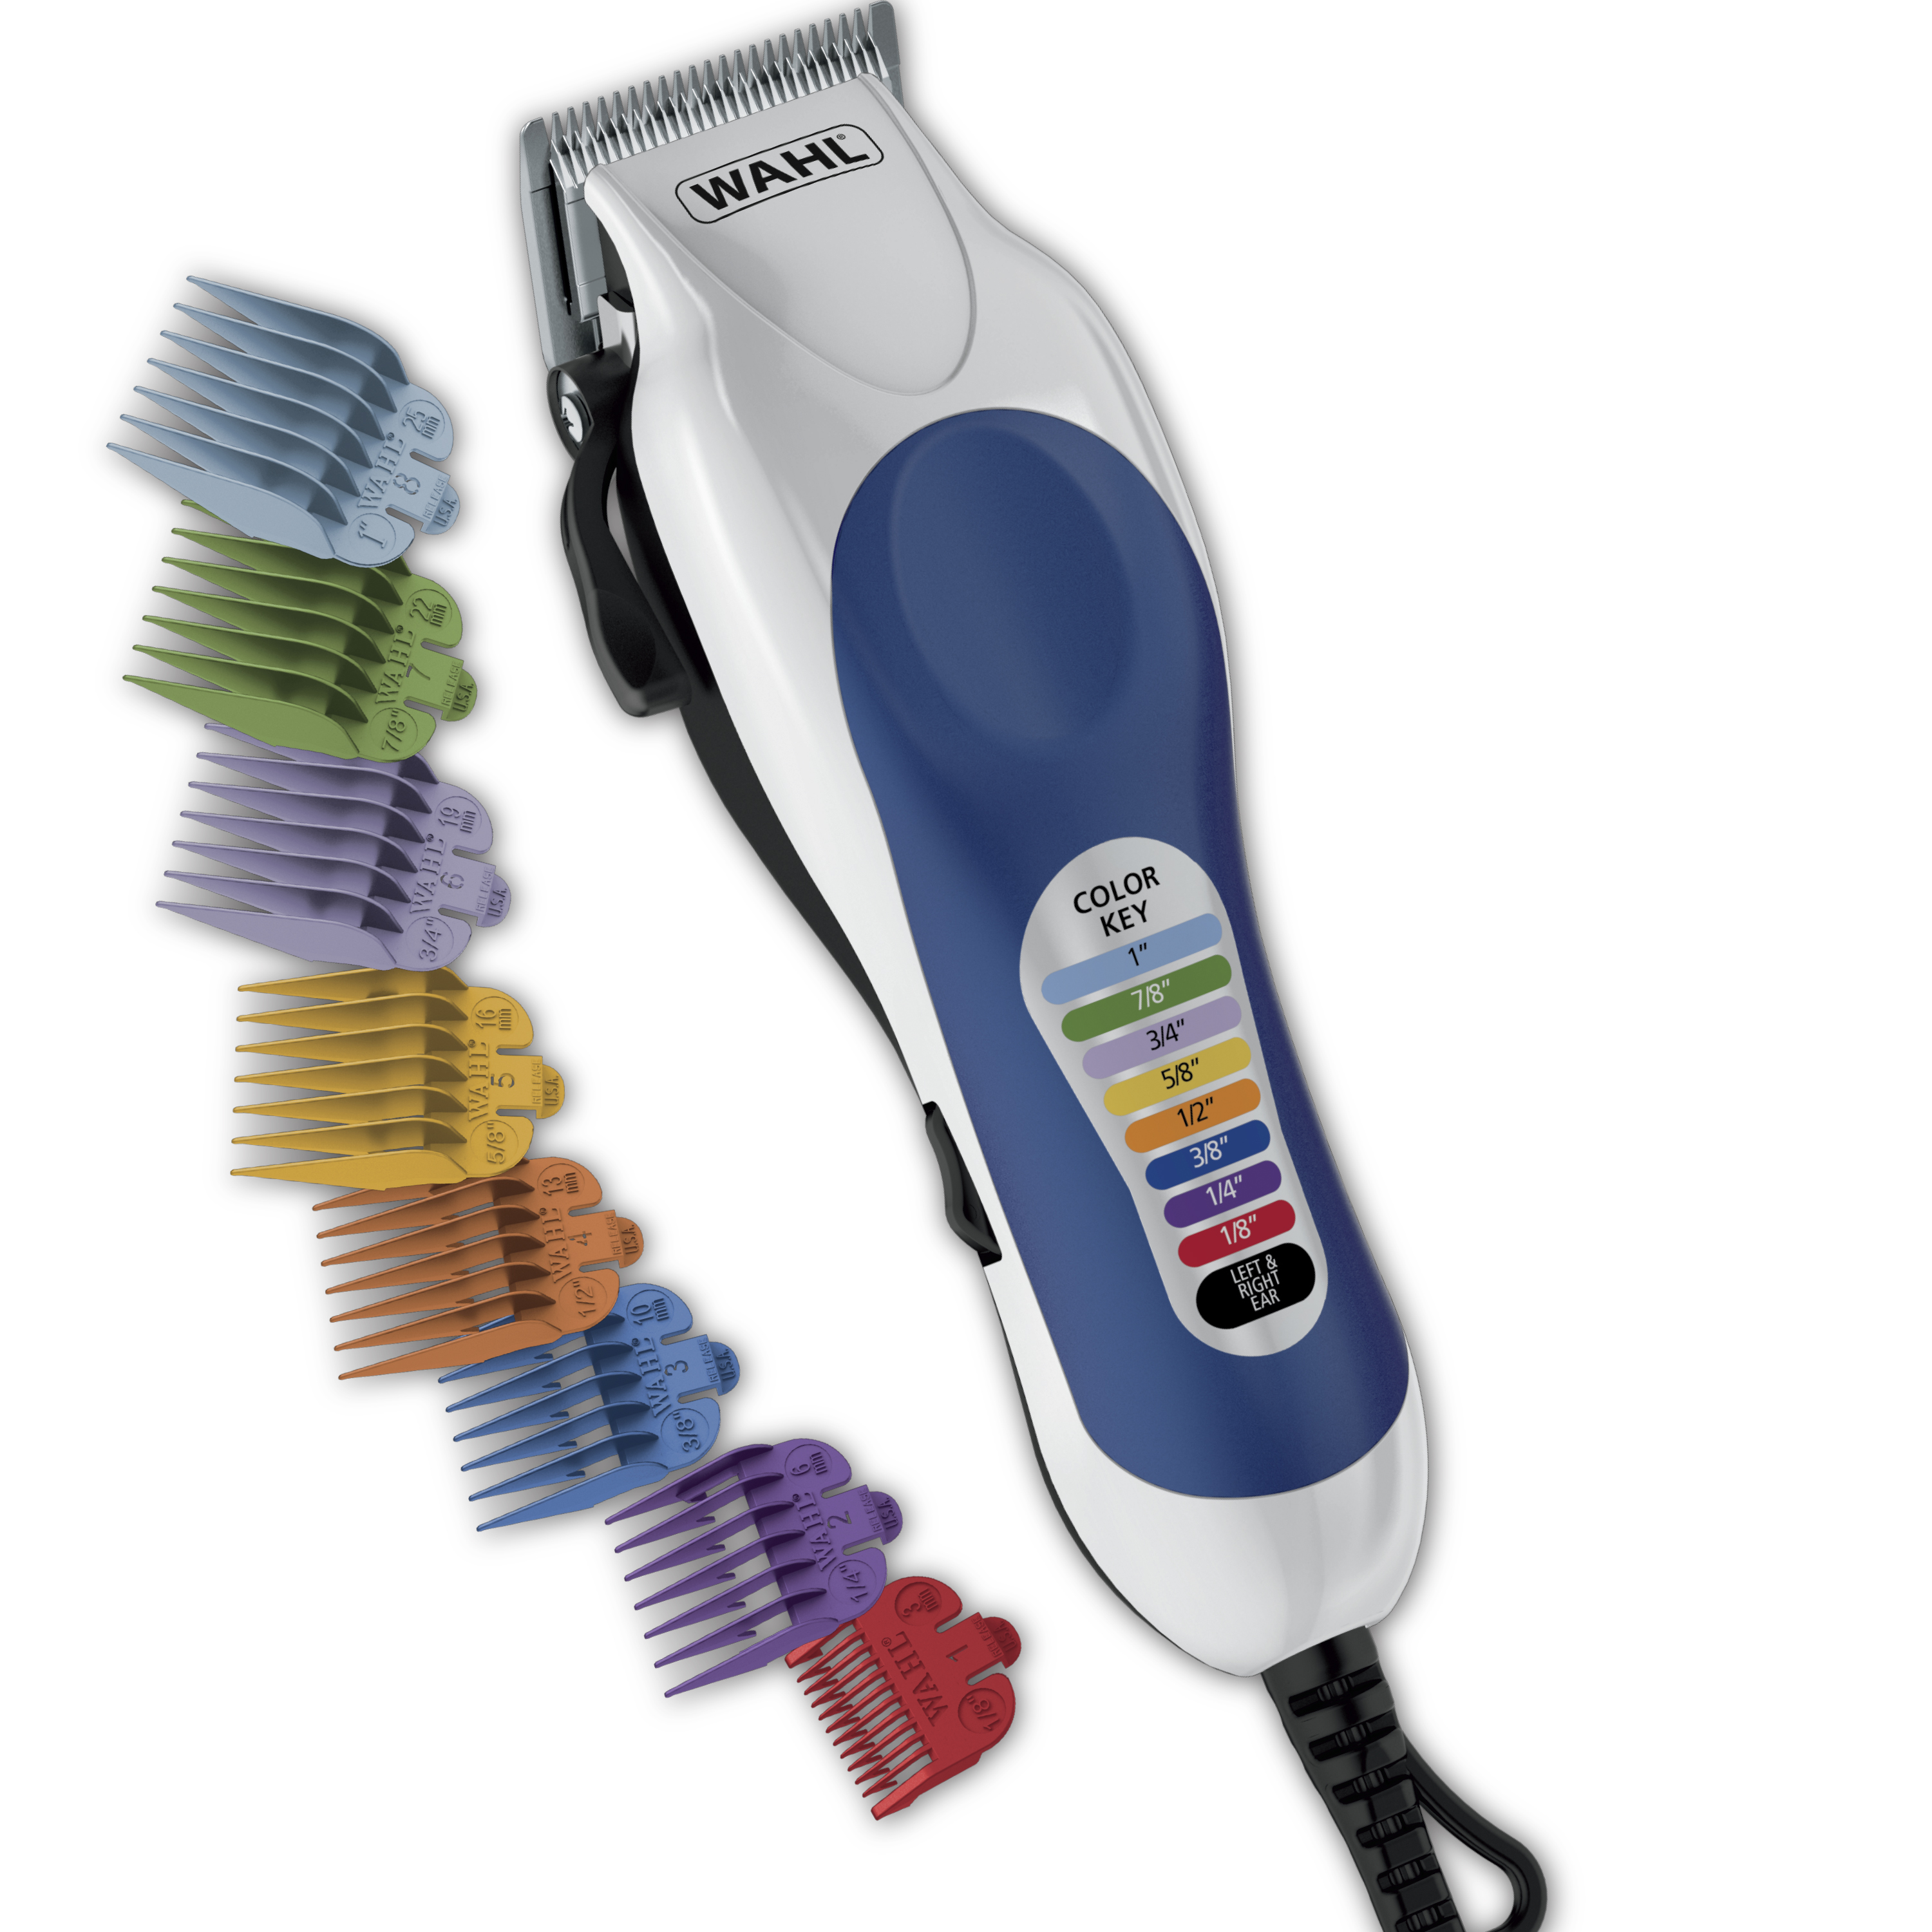 Wahl Corded Color Pro Color Coded Haircut Hair Clipper Kit, 20 pc, Model 79300-400W